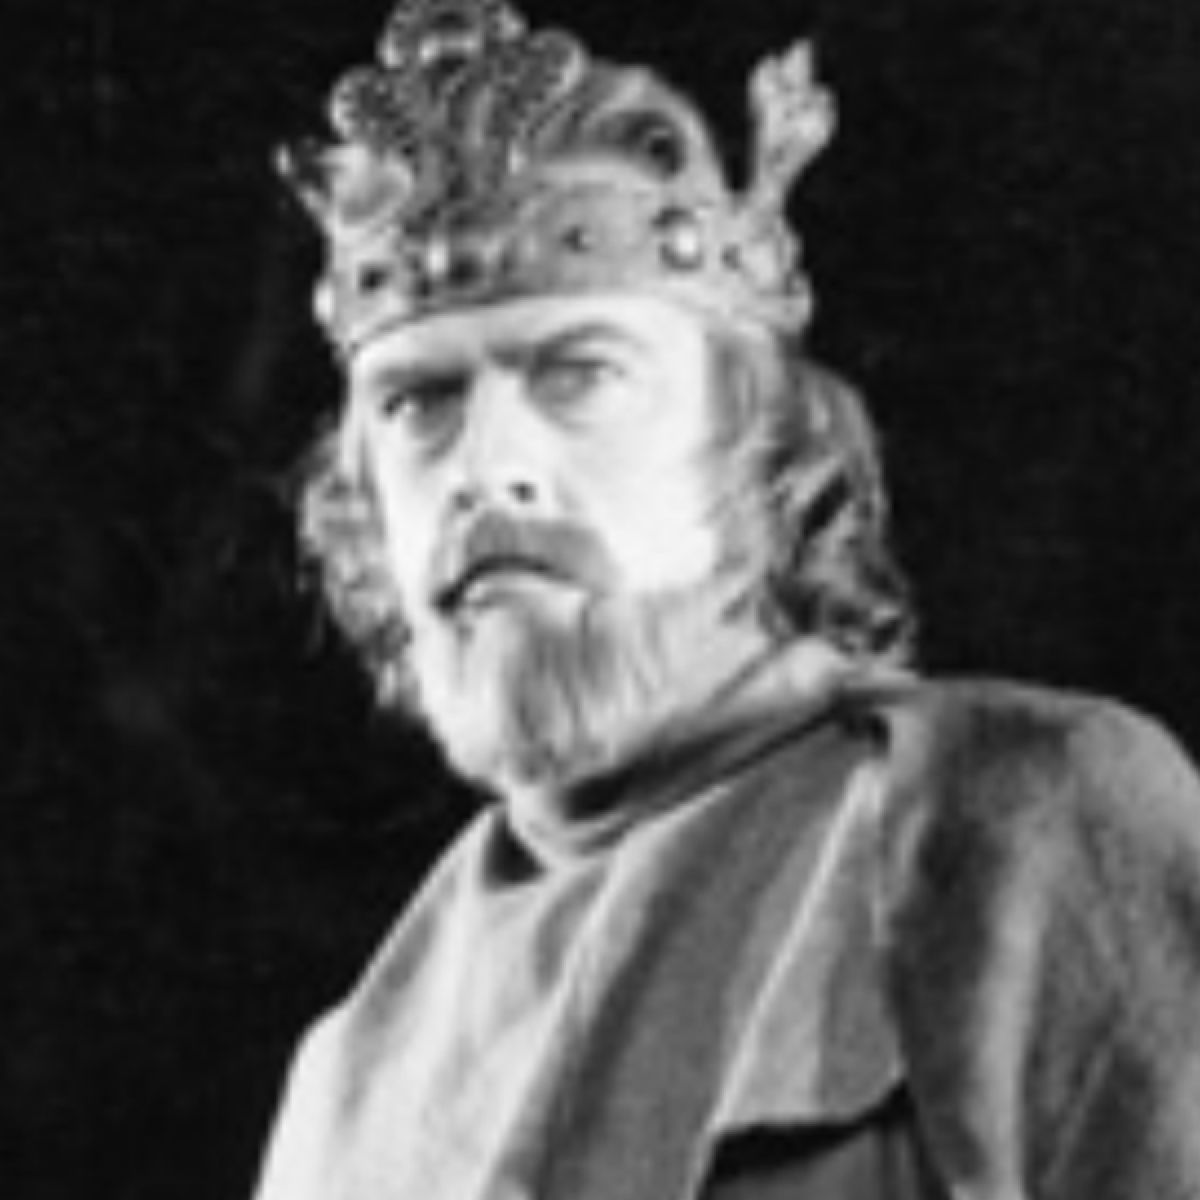 the unfortunate fate of macbeth Such a grisly sight is not one to be easily forgotten by those unfortunate enough to view with the character of macbeth as a tyrannical regicide, it could be a parallel symbol with the fate of those who opposed king james i and the political establishment.